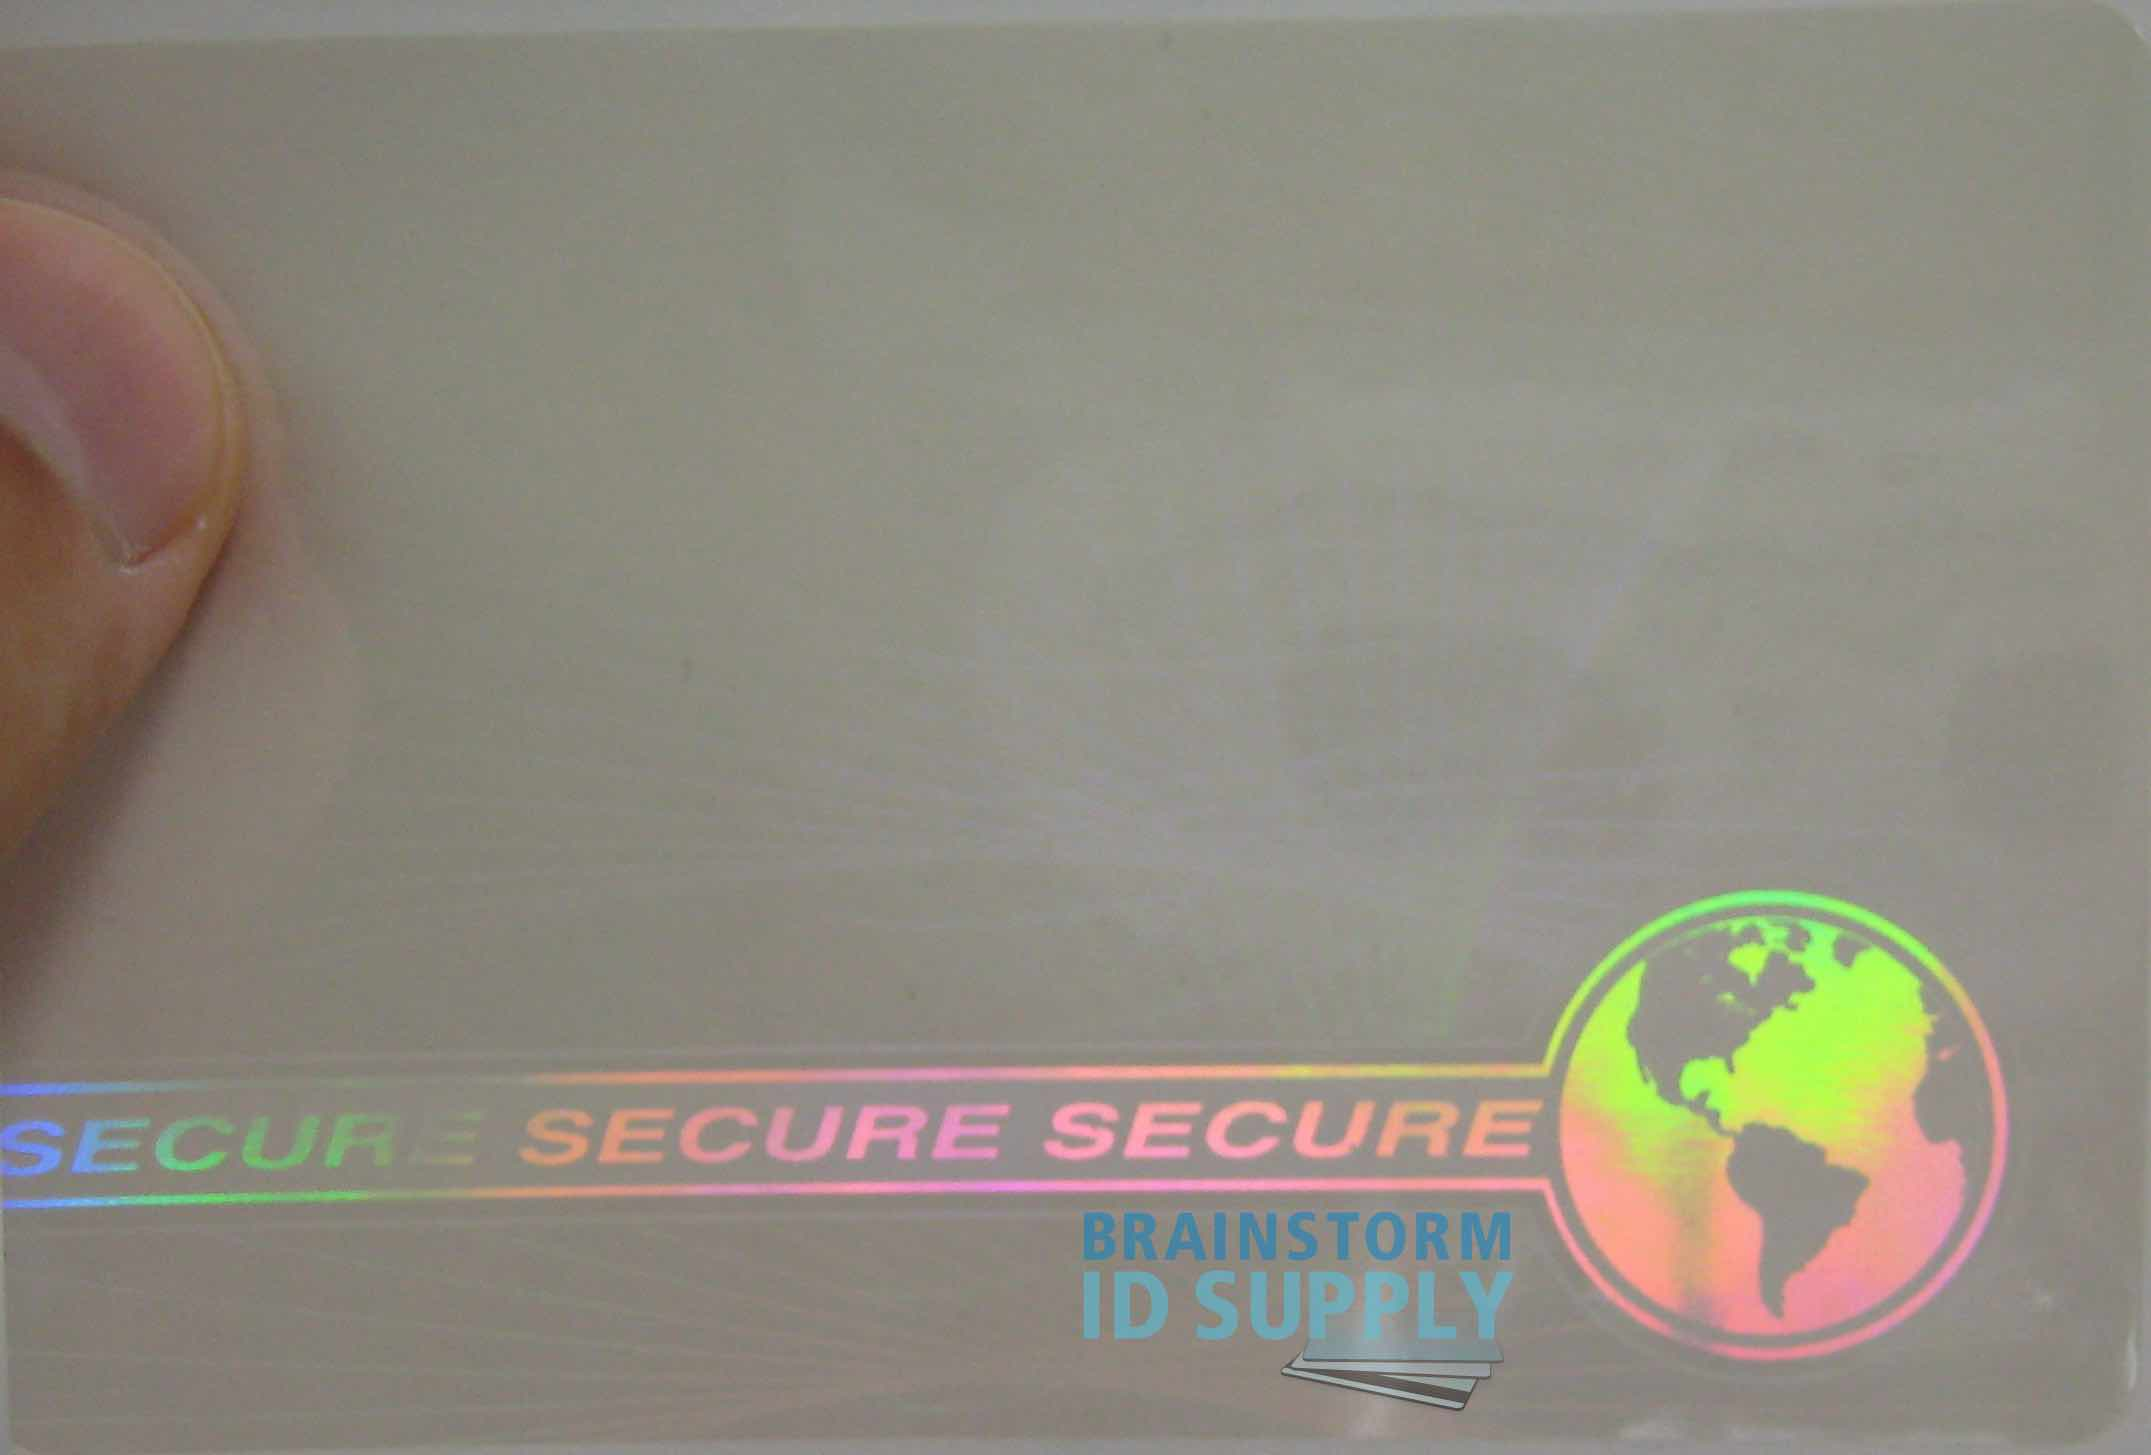 Id Secure Teslin Details amp; Card W About Hologram For 100 Overlays pvc Pack - Web Earth